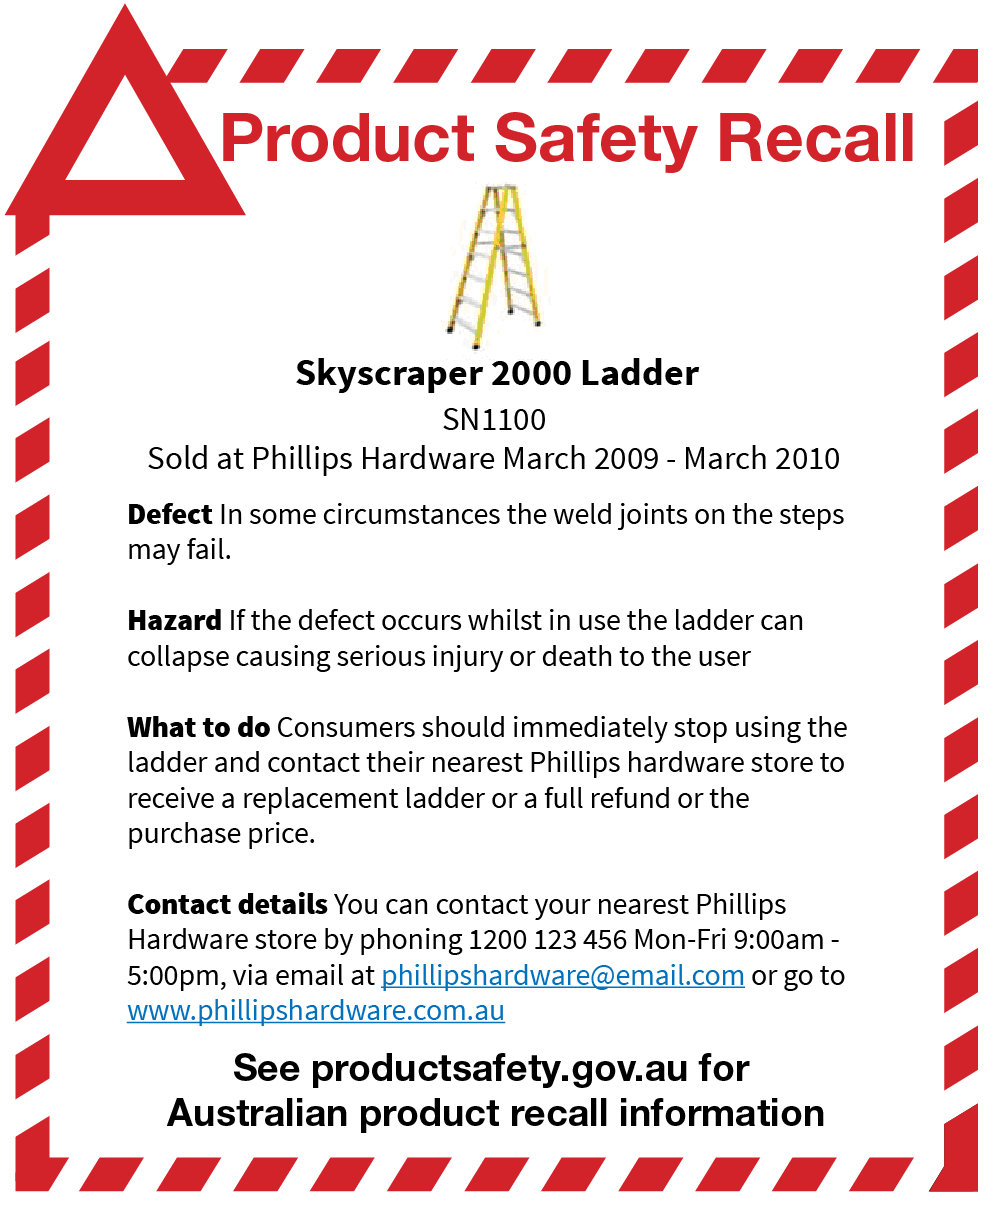 Sample recall notice